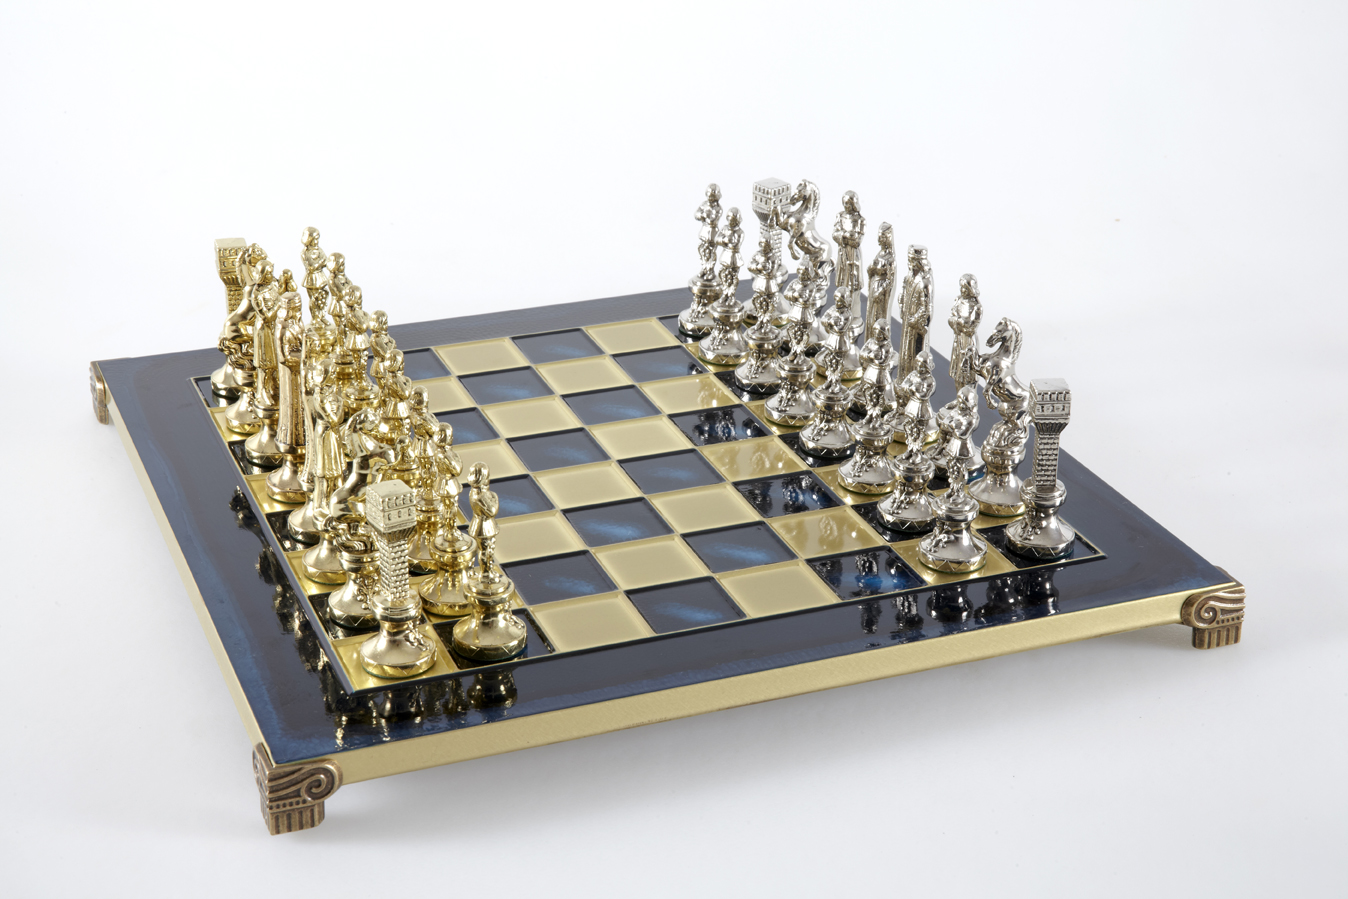 Renaissance chess set with gold-silver chessmen/Blue chessboard 36 sm